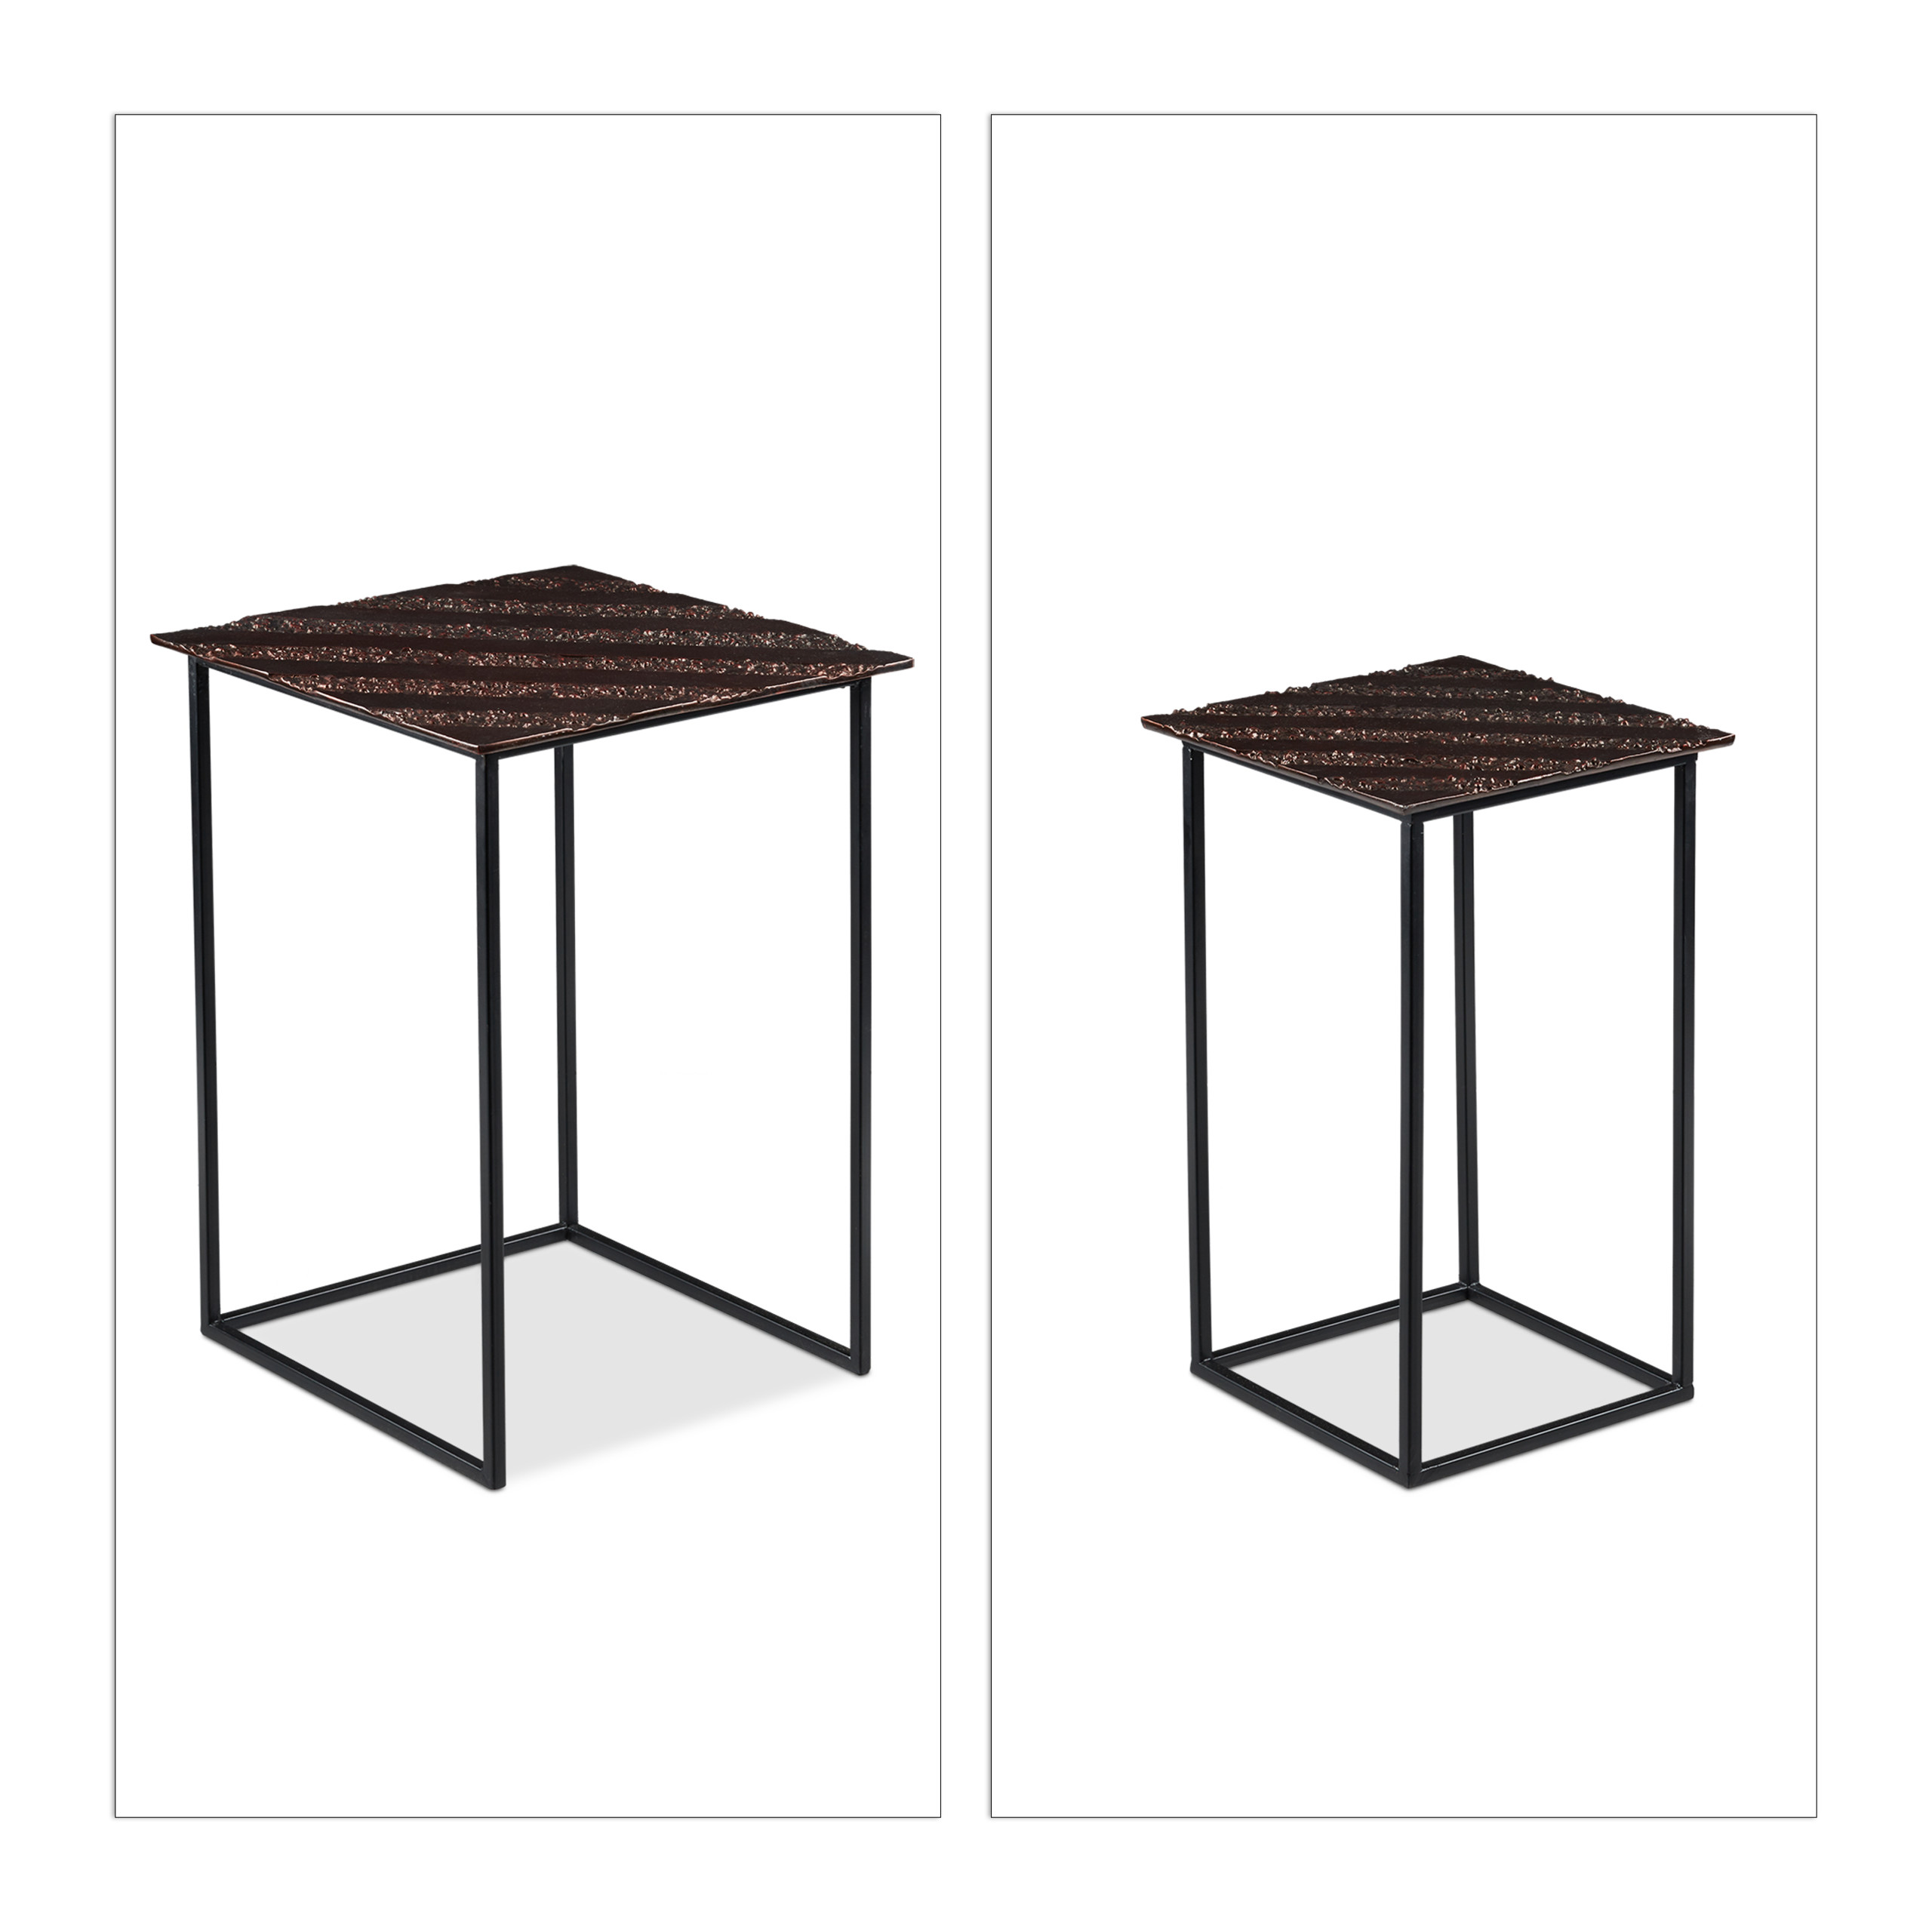 Nesting-Table-Set-of-2-Decorative-Side-Table-Retro-Vanity-Stand-Coffee-Table thumbnail 14